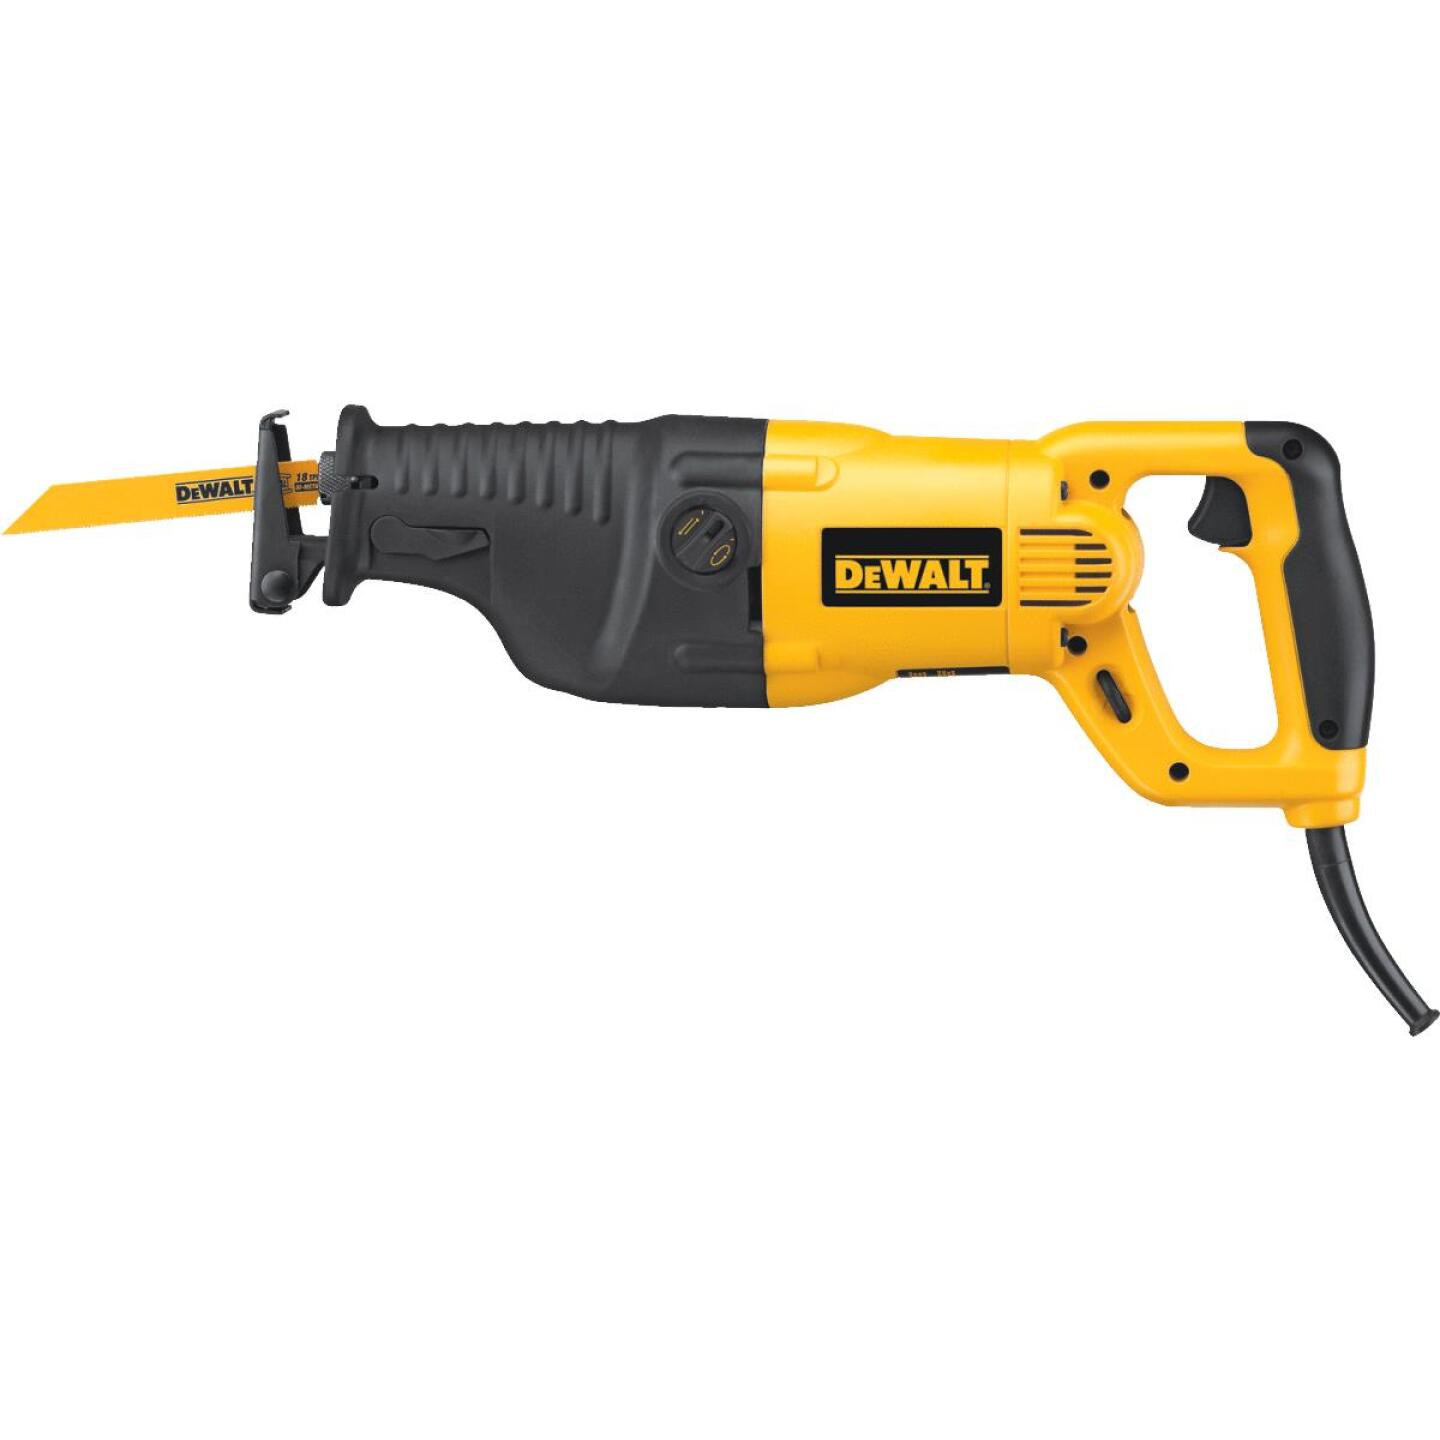 DeWalt 13-Amp Reciprocating Saw Kit Image 2